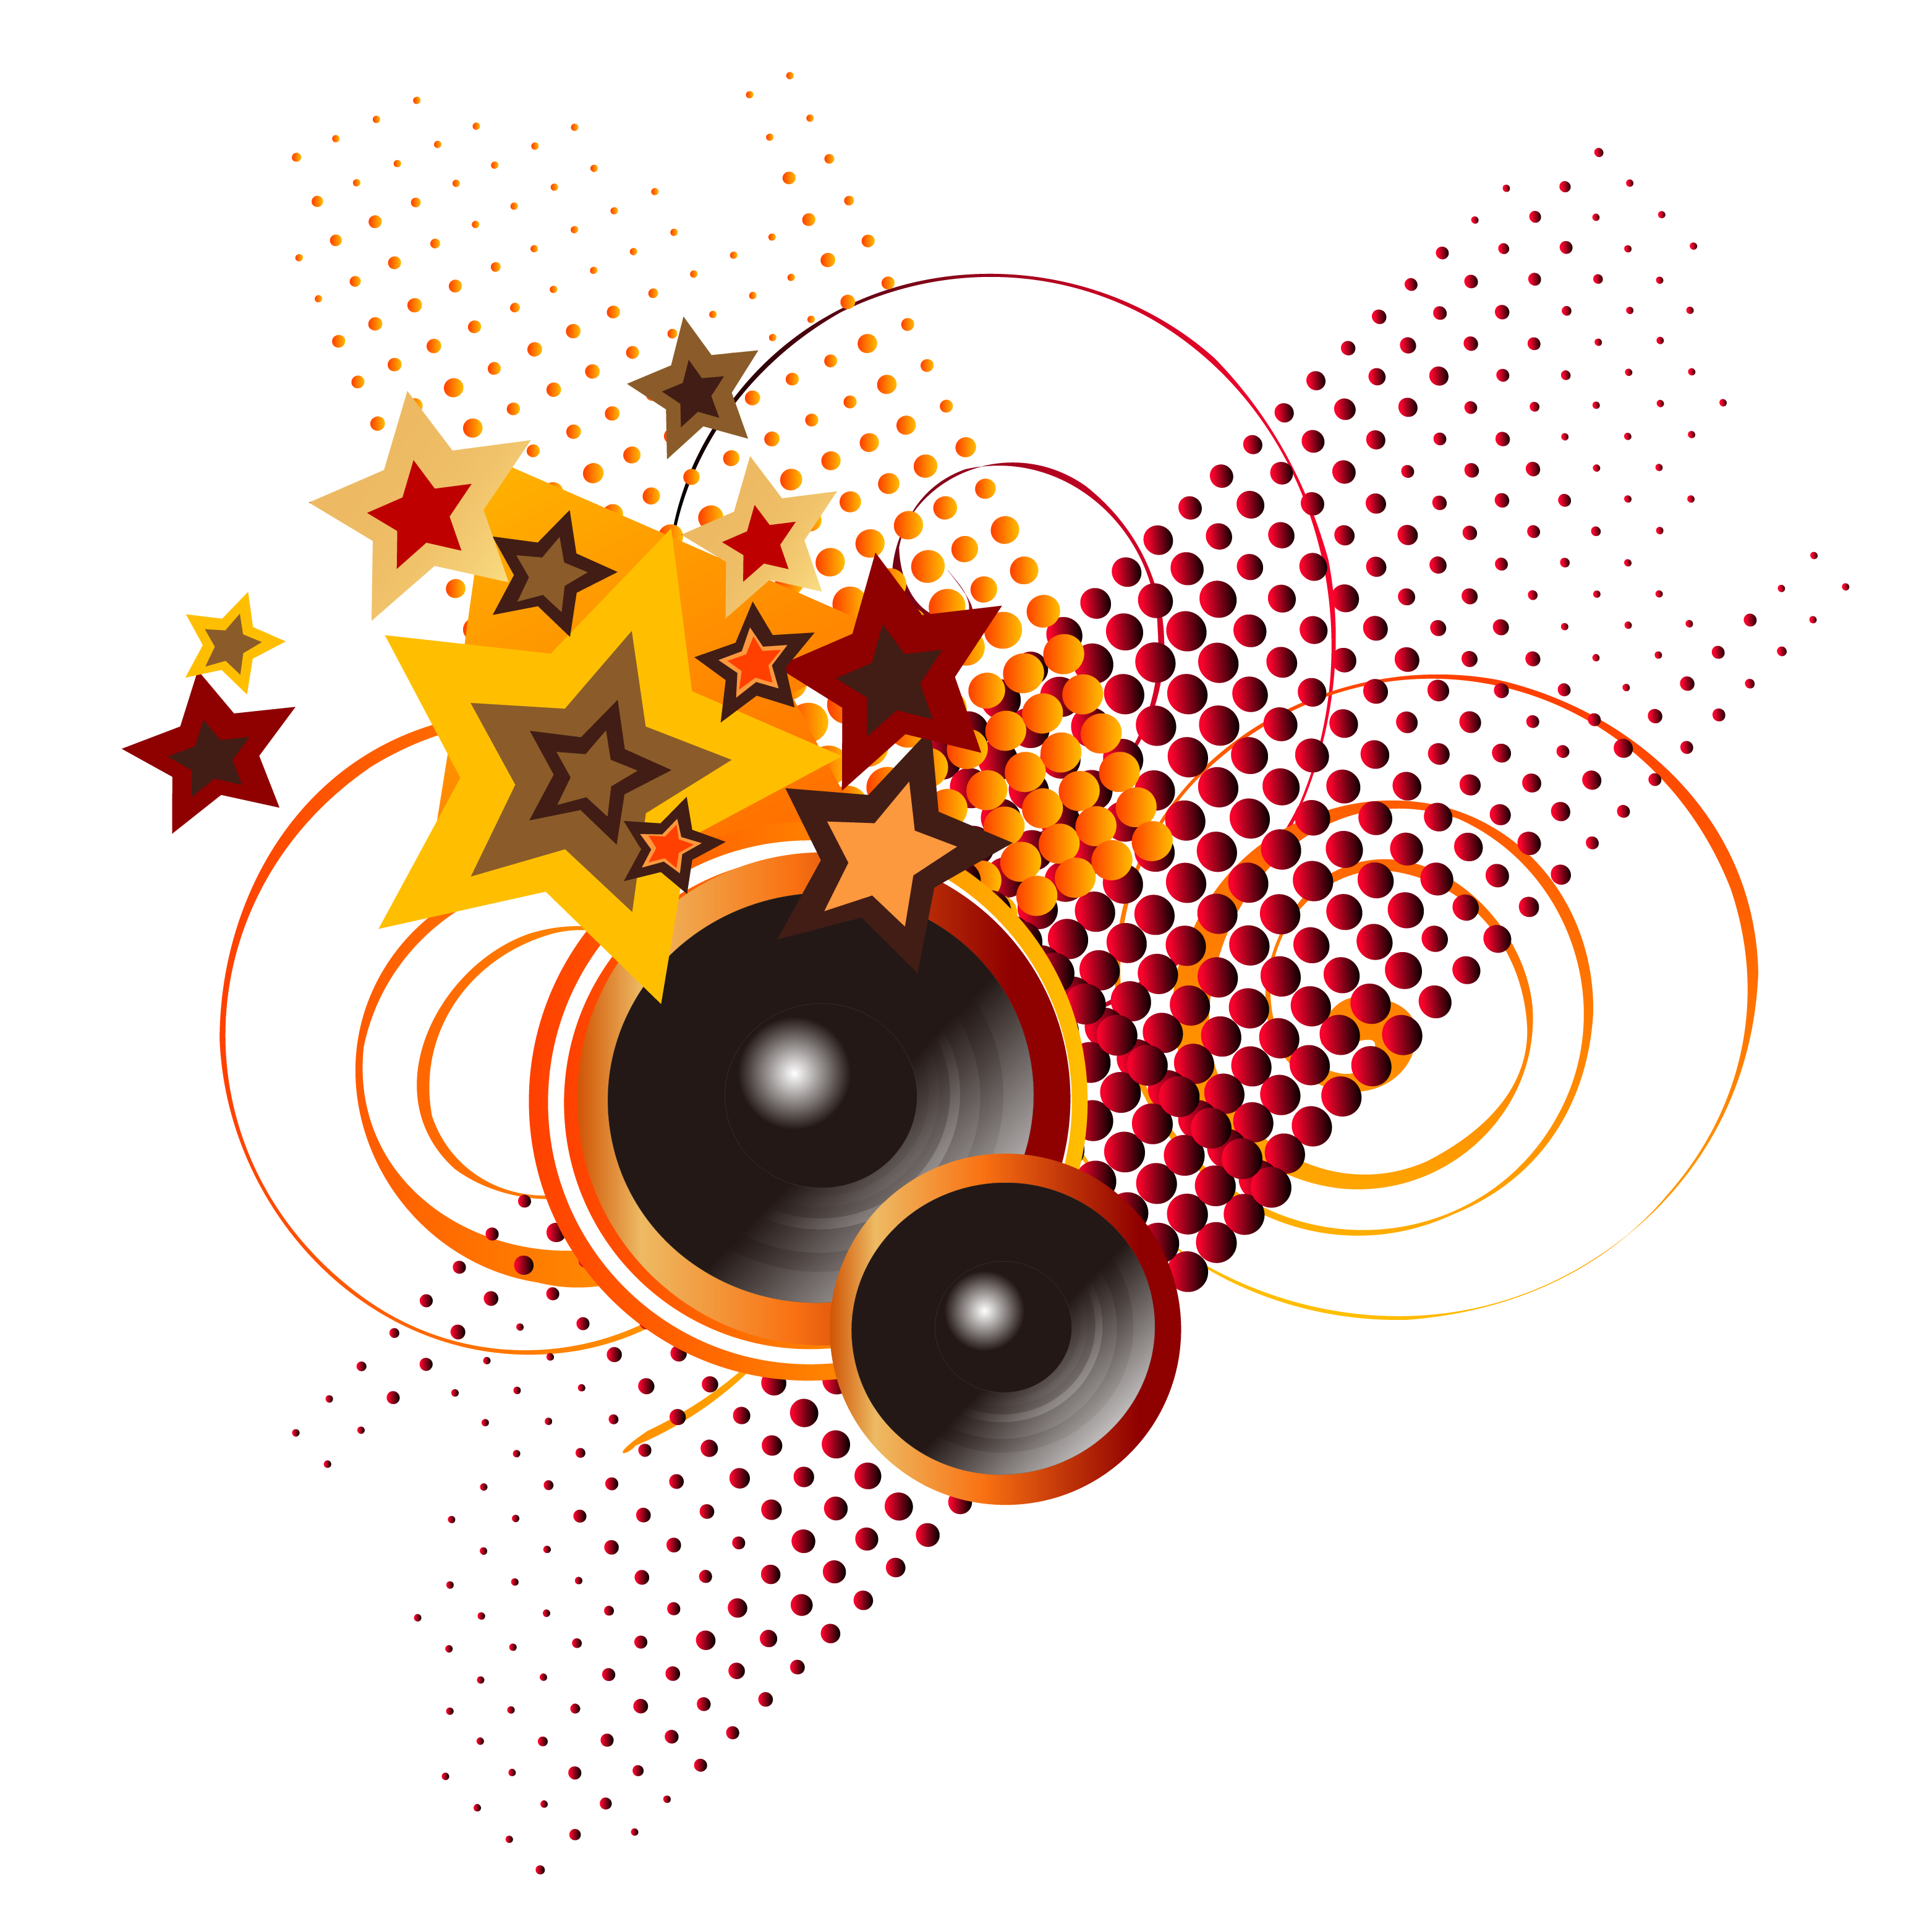 Cool png backgrounds. Microphone music trendy background